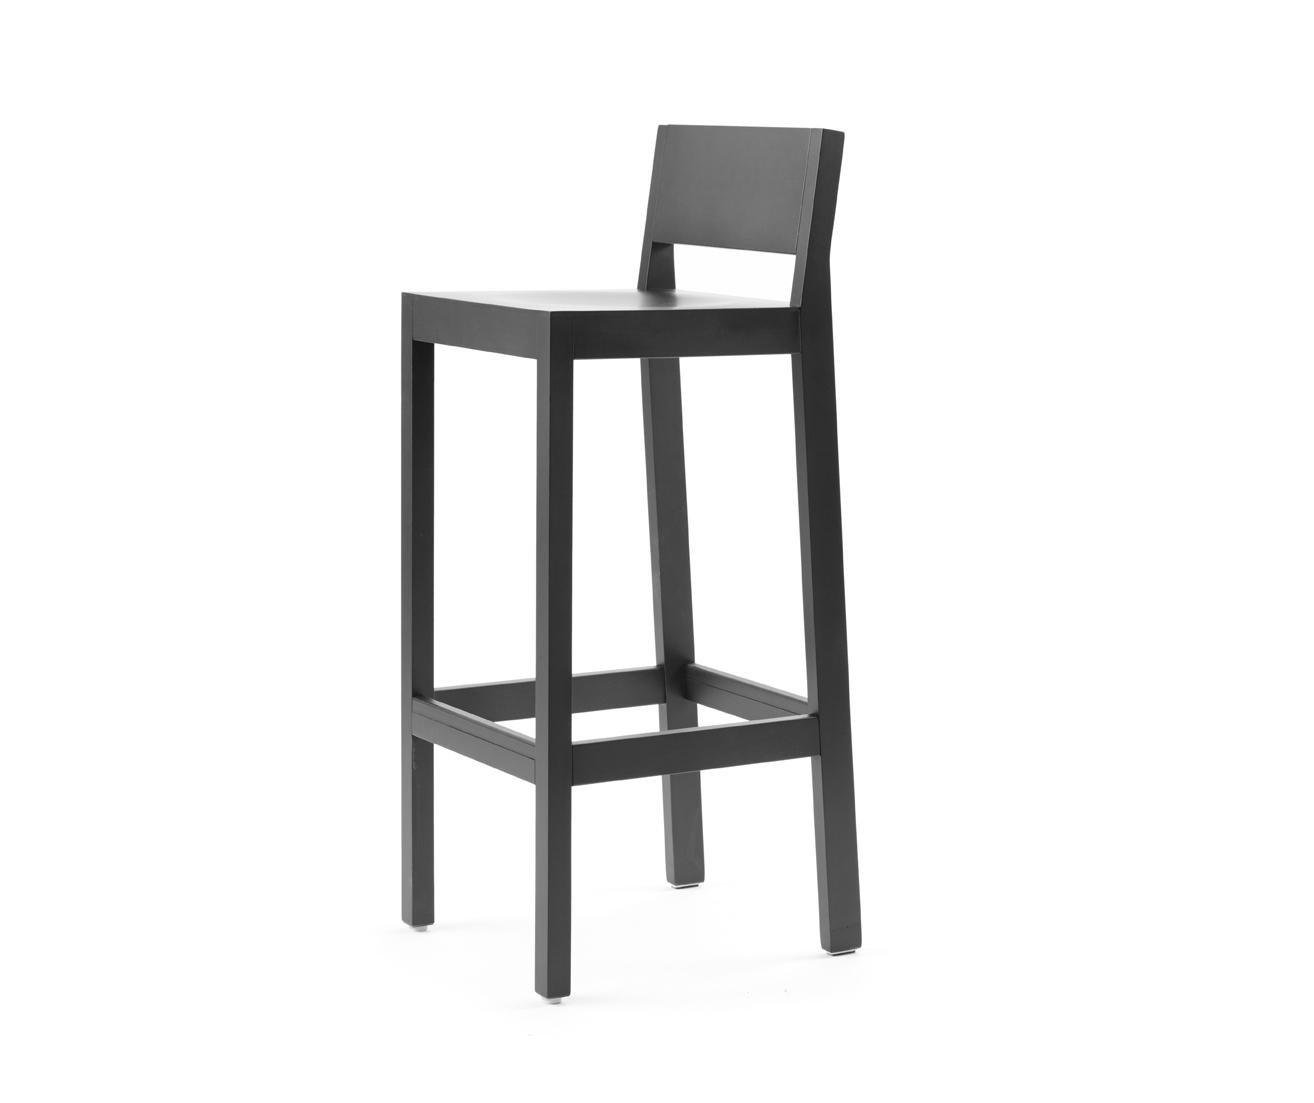 Enjoyable Akustik Bar 6143 Designer Furniture Architonic Machost Co Dining Chair Design Ideas Machostcouk